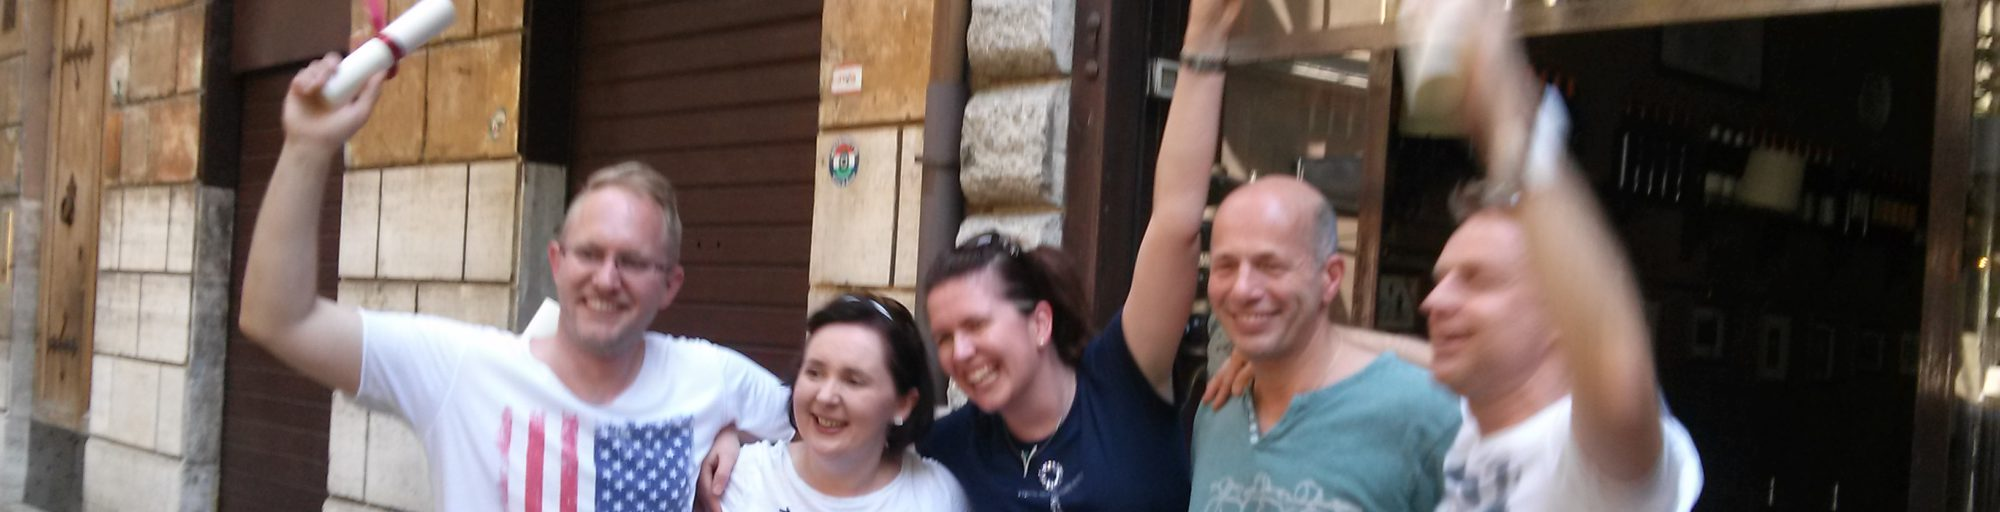 Teambuilding incentives in Rome